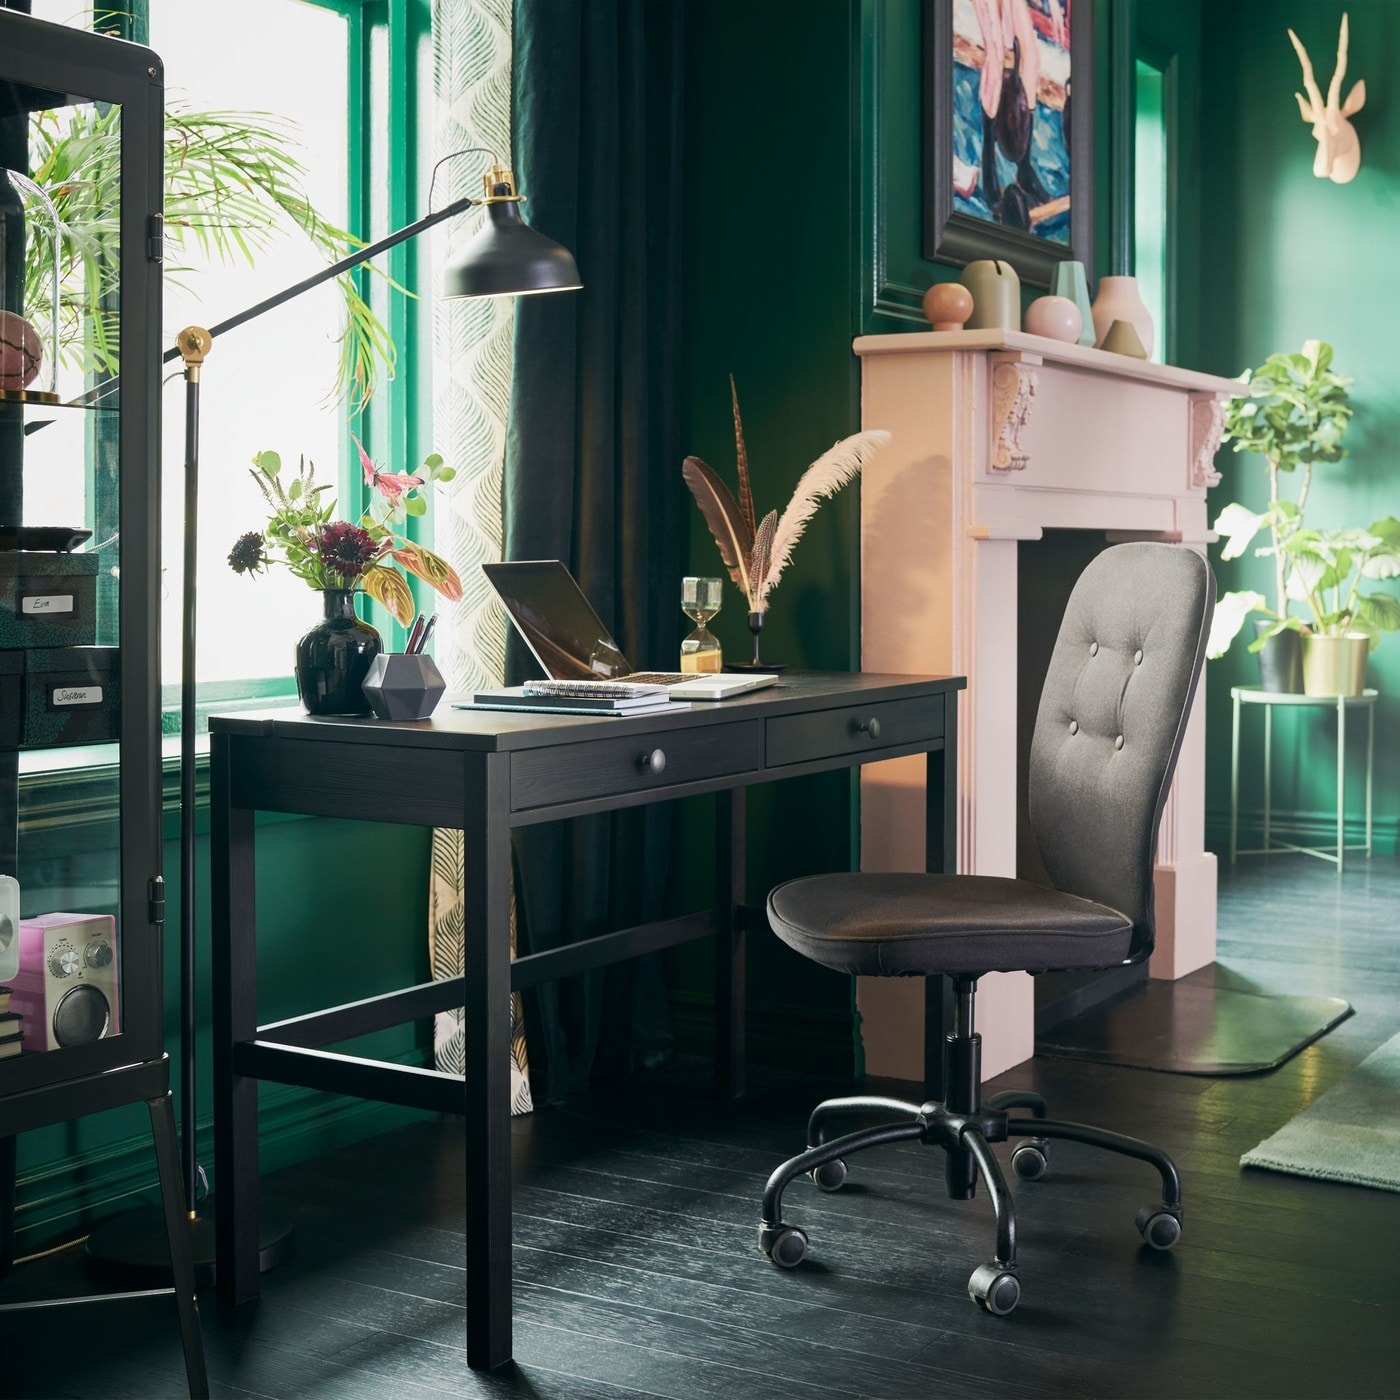 A black brown HEMNES work desk by the window in a sitting room with green walls and a pink fireplace.